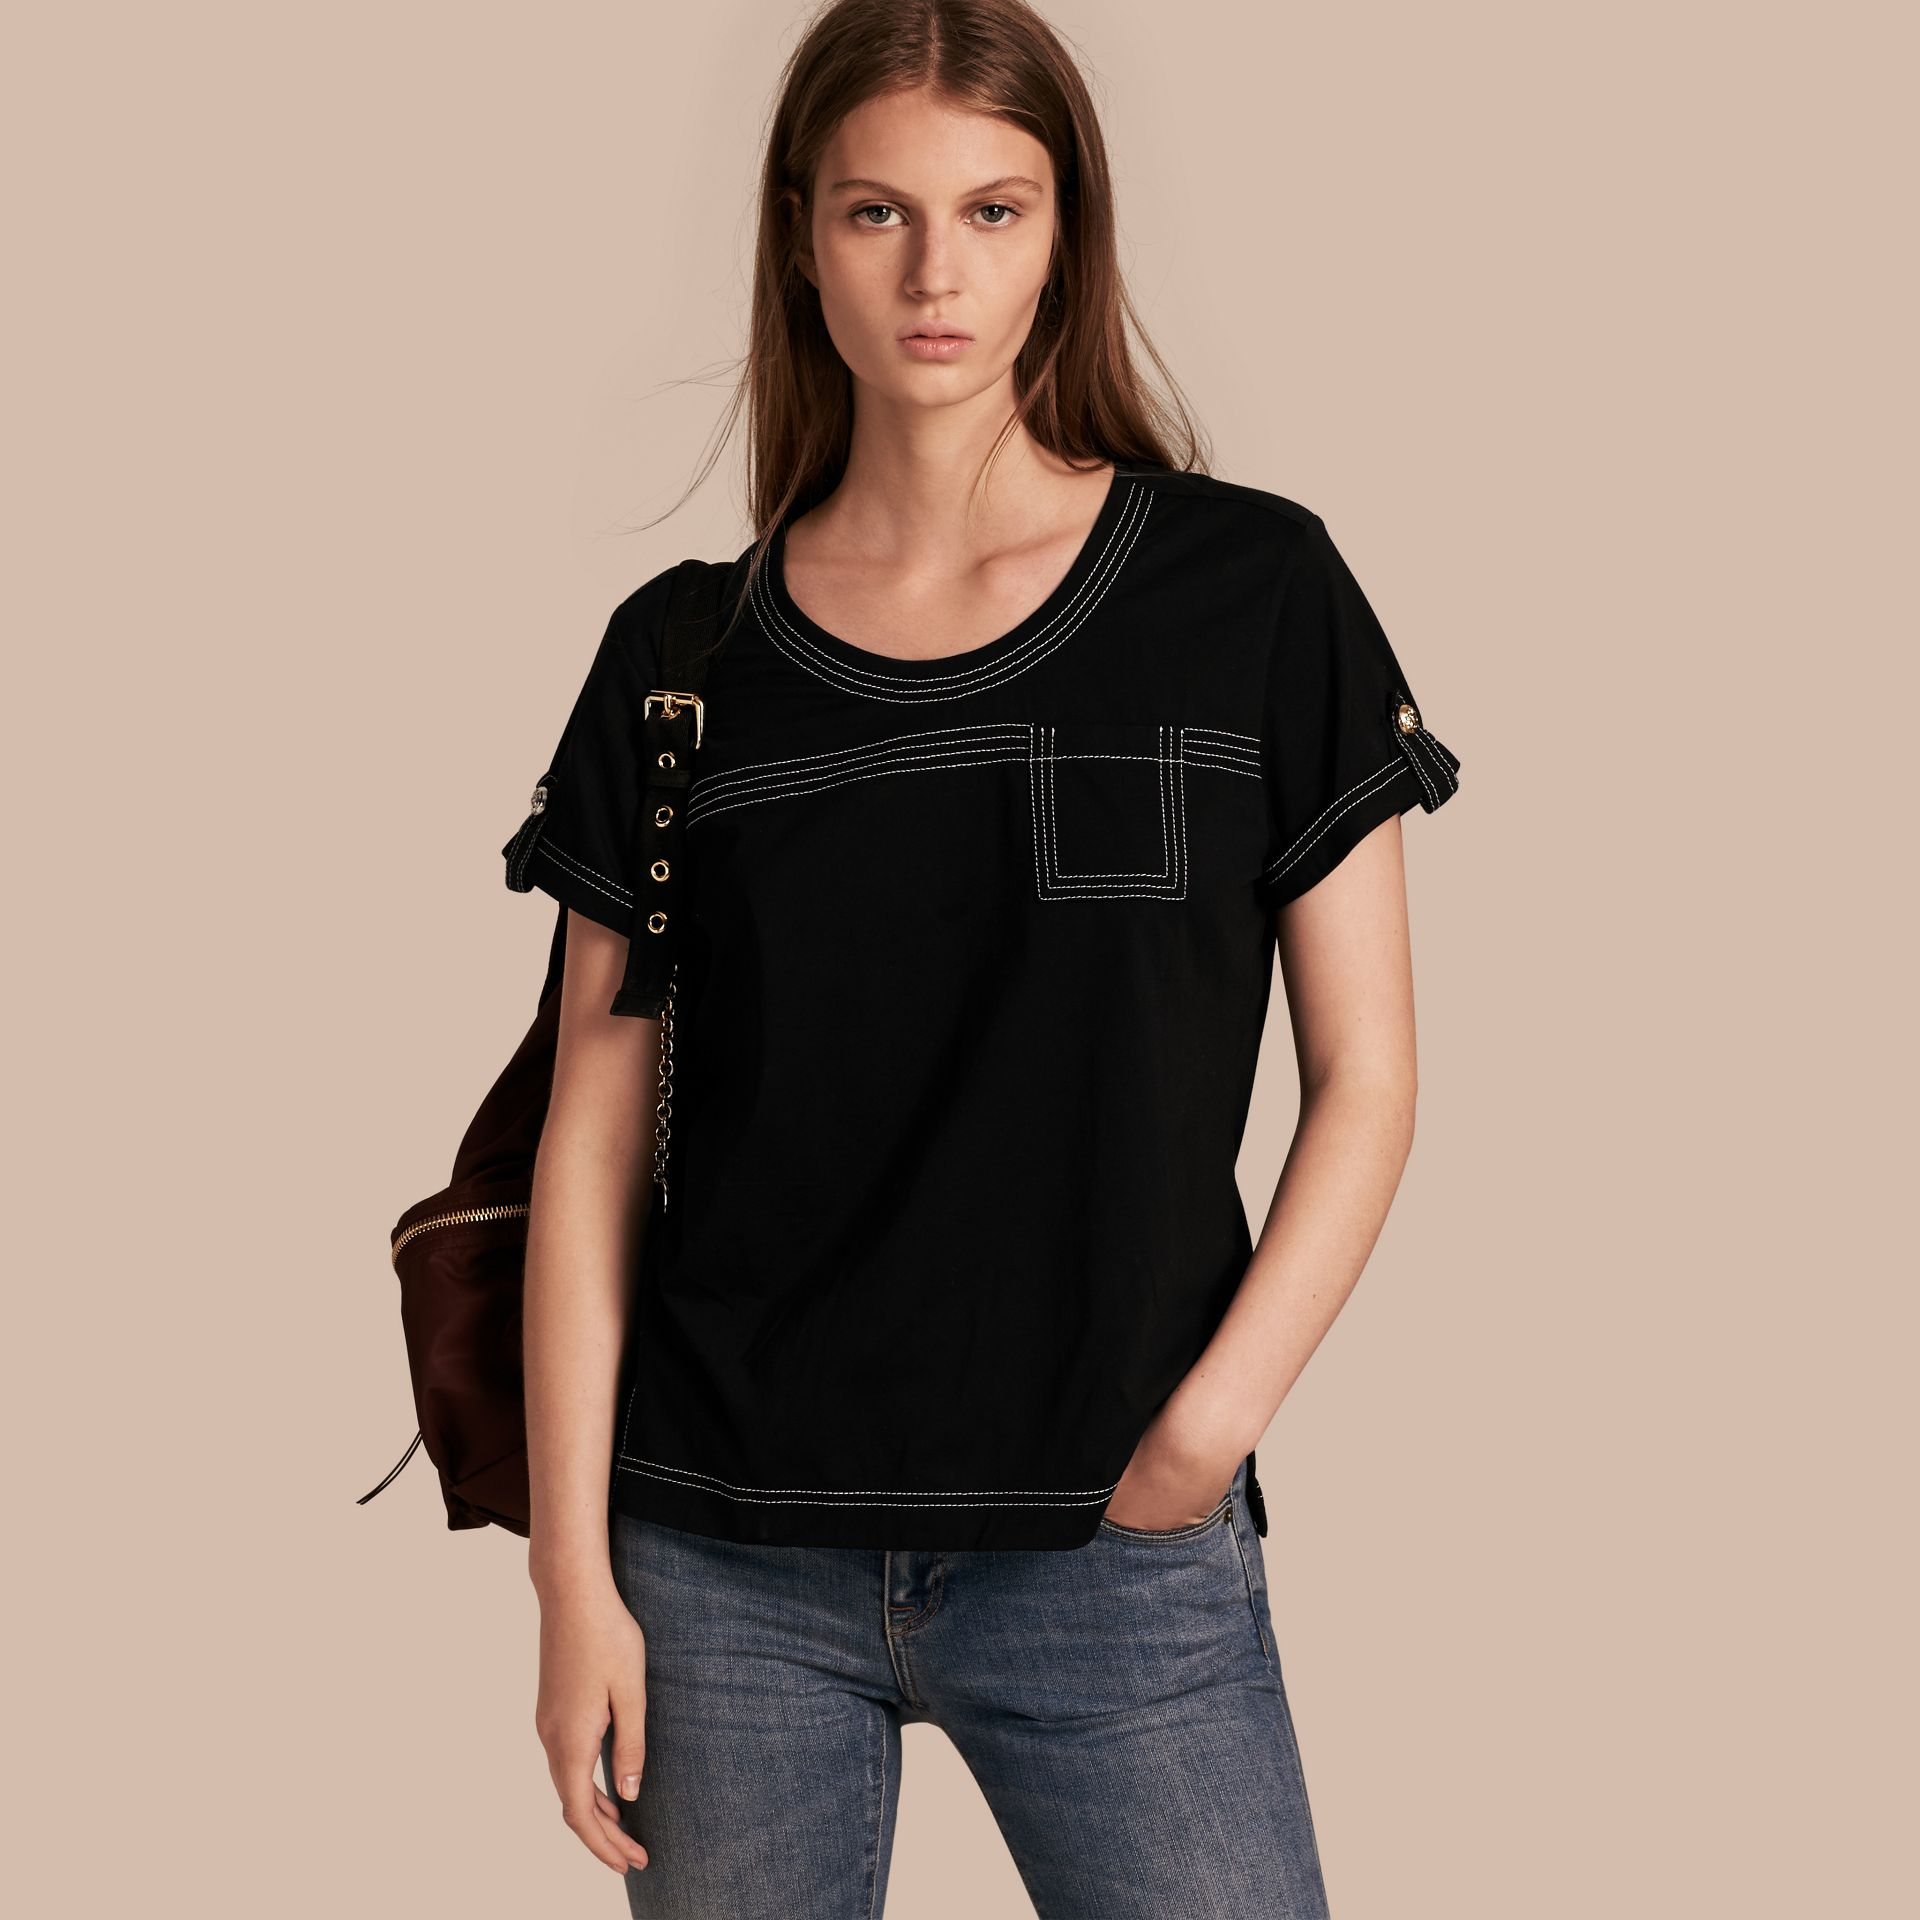 Black Topstitch Detail Cotton T-shirt Black - gallery image 1